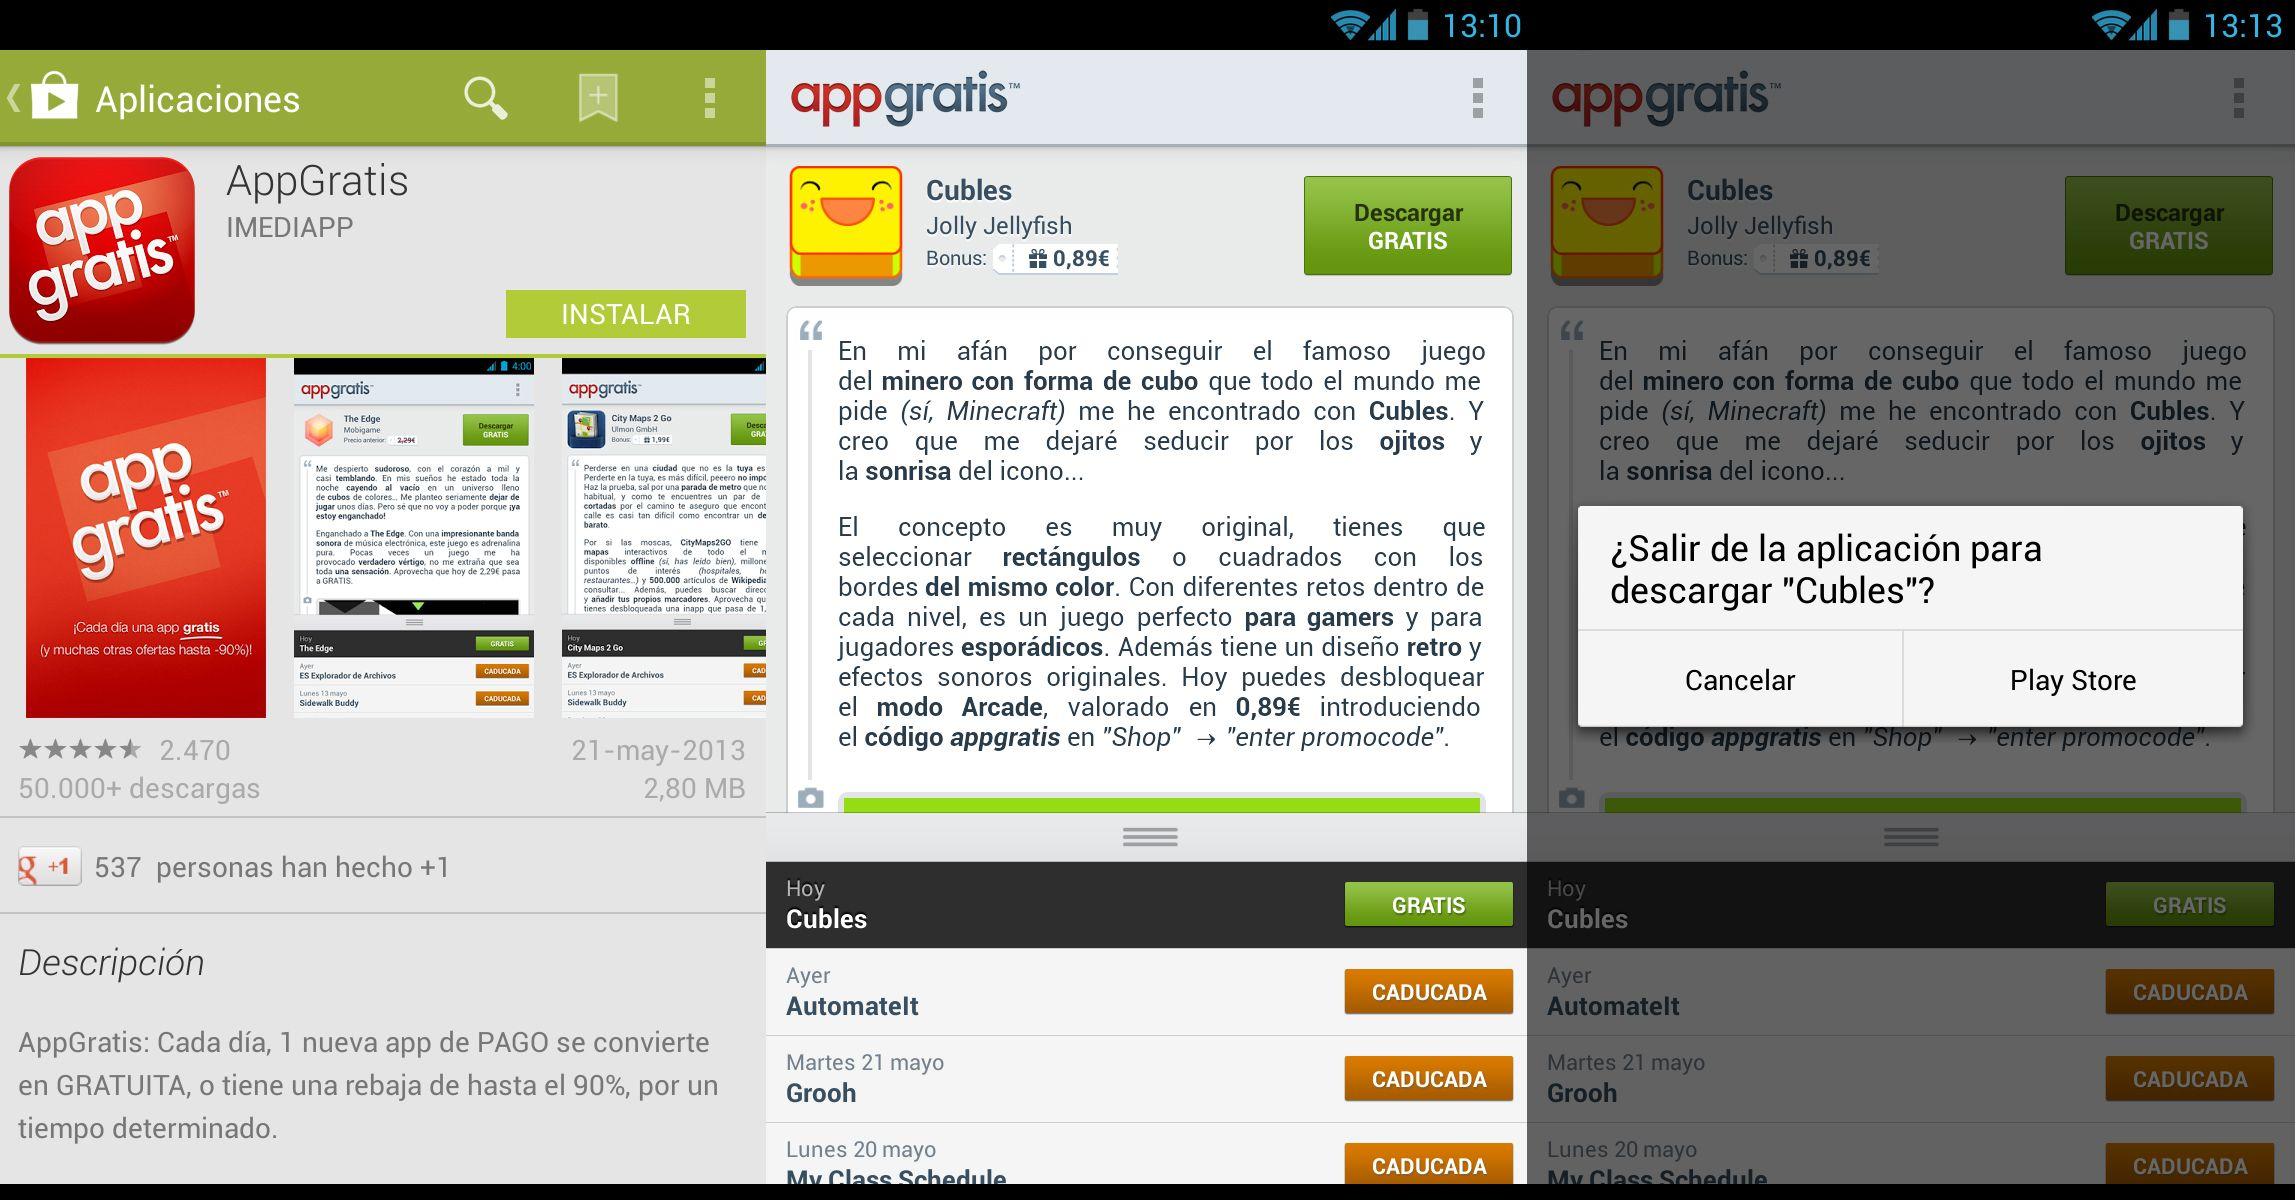 Appgratis Android